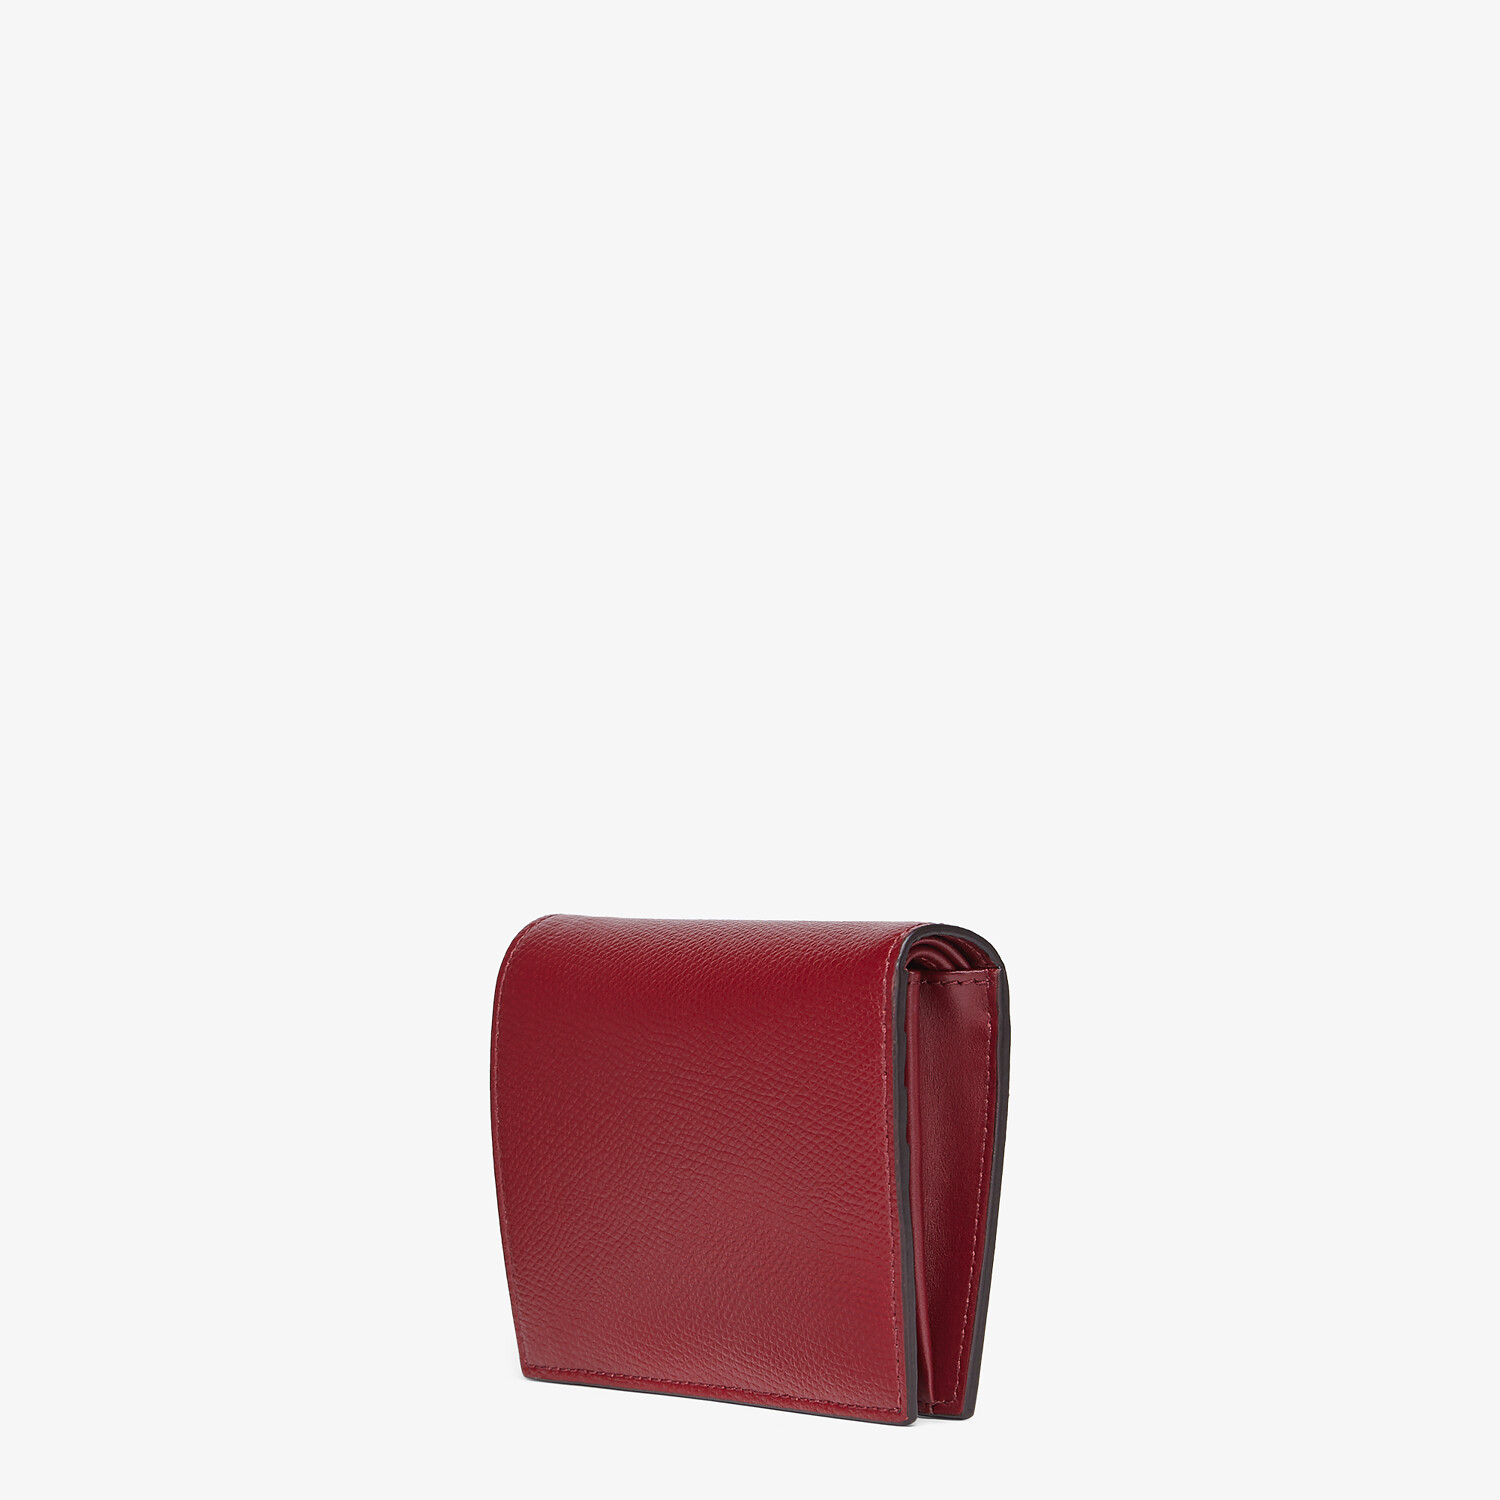 FENDI BIFOLD - Burgundy leather compact wallet - view 2 detail